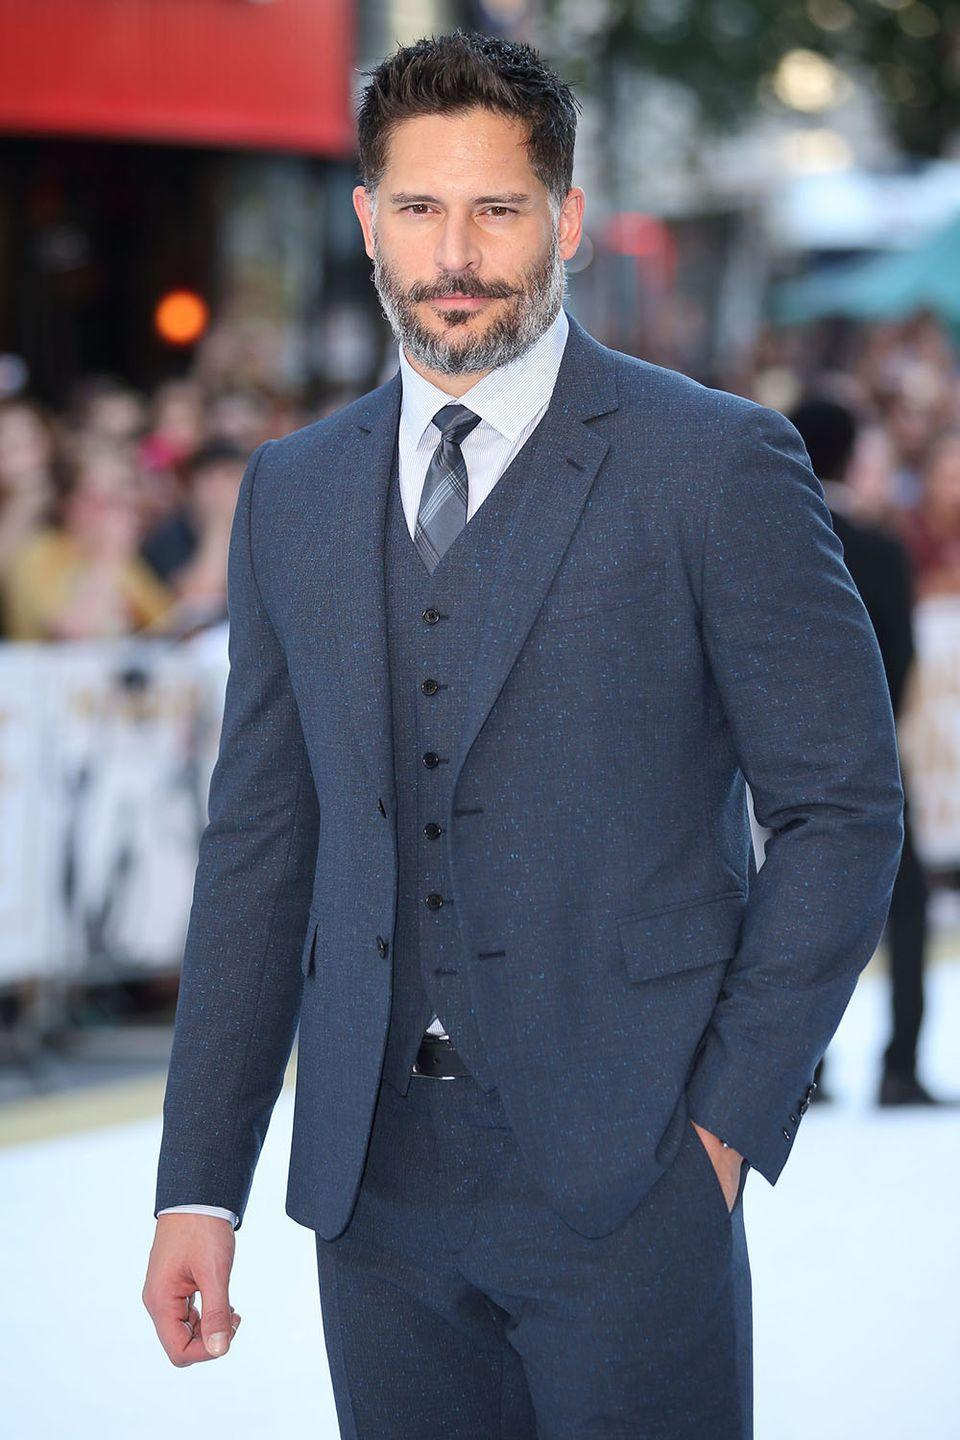 """<p>The <em>Magic Mike</em> star revealed that he didn't have much choice but to get sober in an interview with the <a href=""""http://www.huffingtonpost.com/2013/12/03/joe-manganiello-alcohol-problem_n_4379604.html"""" rel=""""nofollow noopener"""" target=""""_blank"""" data-ylk=""""slk:Huffington Post"""" class=""""link rapid-noclick-resp"""">Huffington Post</a>. Manganiello recalls the struggle he went through before getting sober: """"I was homeless, careless and broke with no career, so yes, it was worth it [to get sober].""""</p>"""